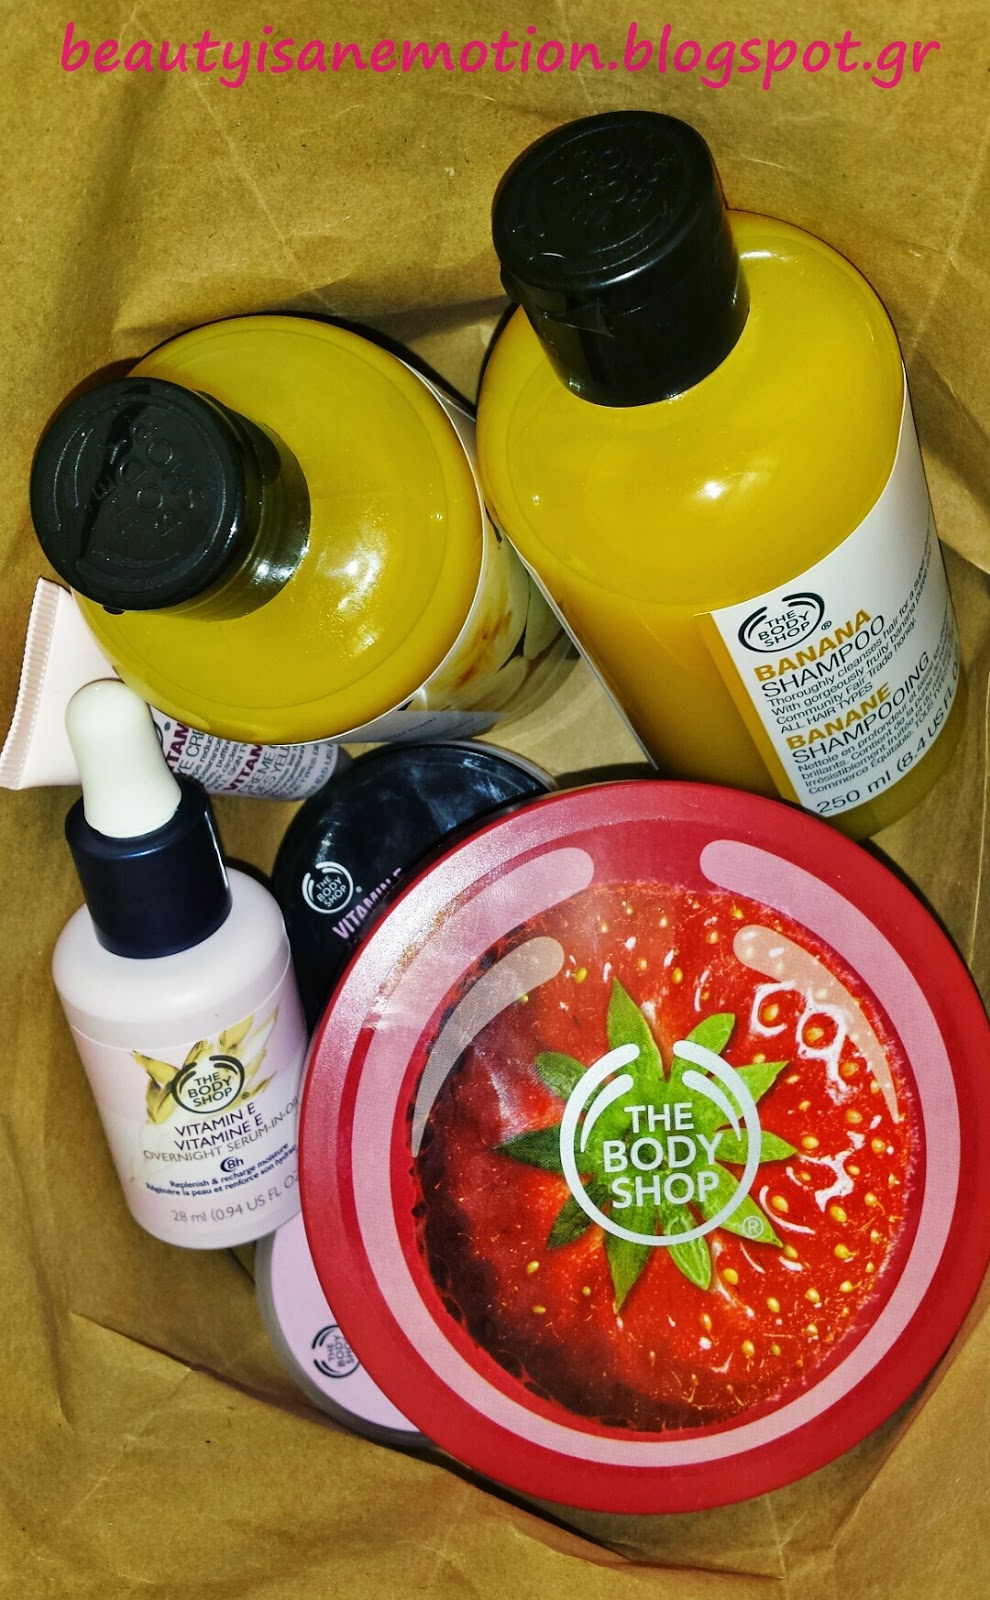 body shop haul vitamine E strawberry banana